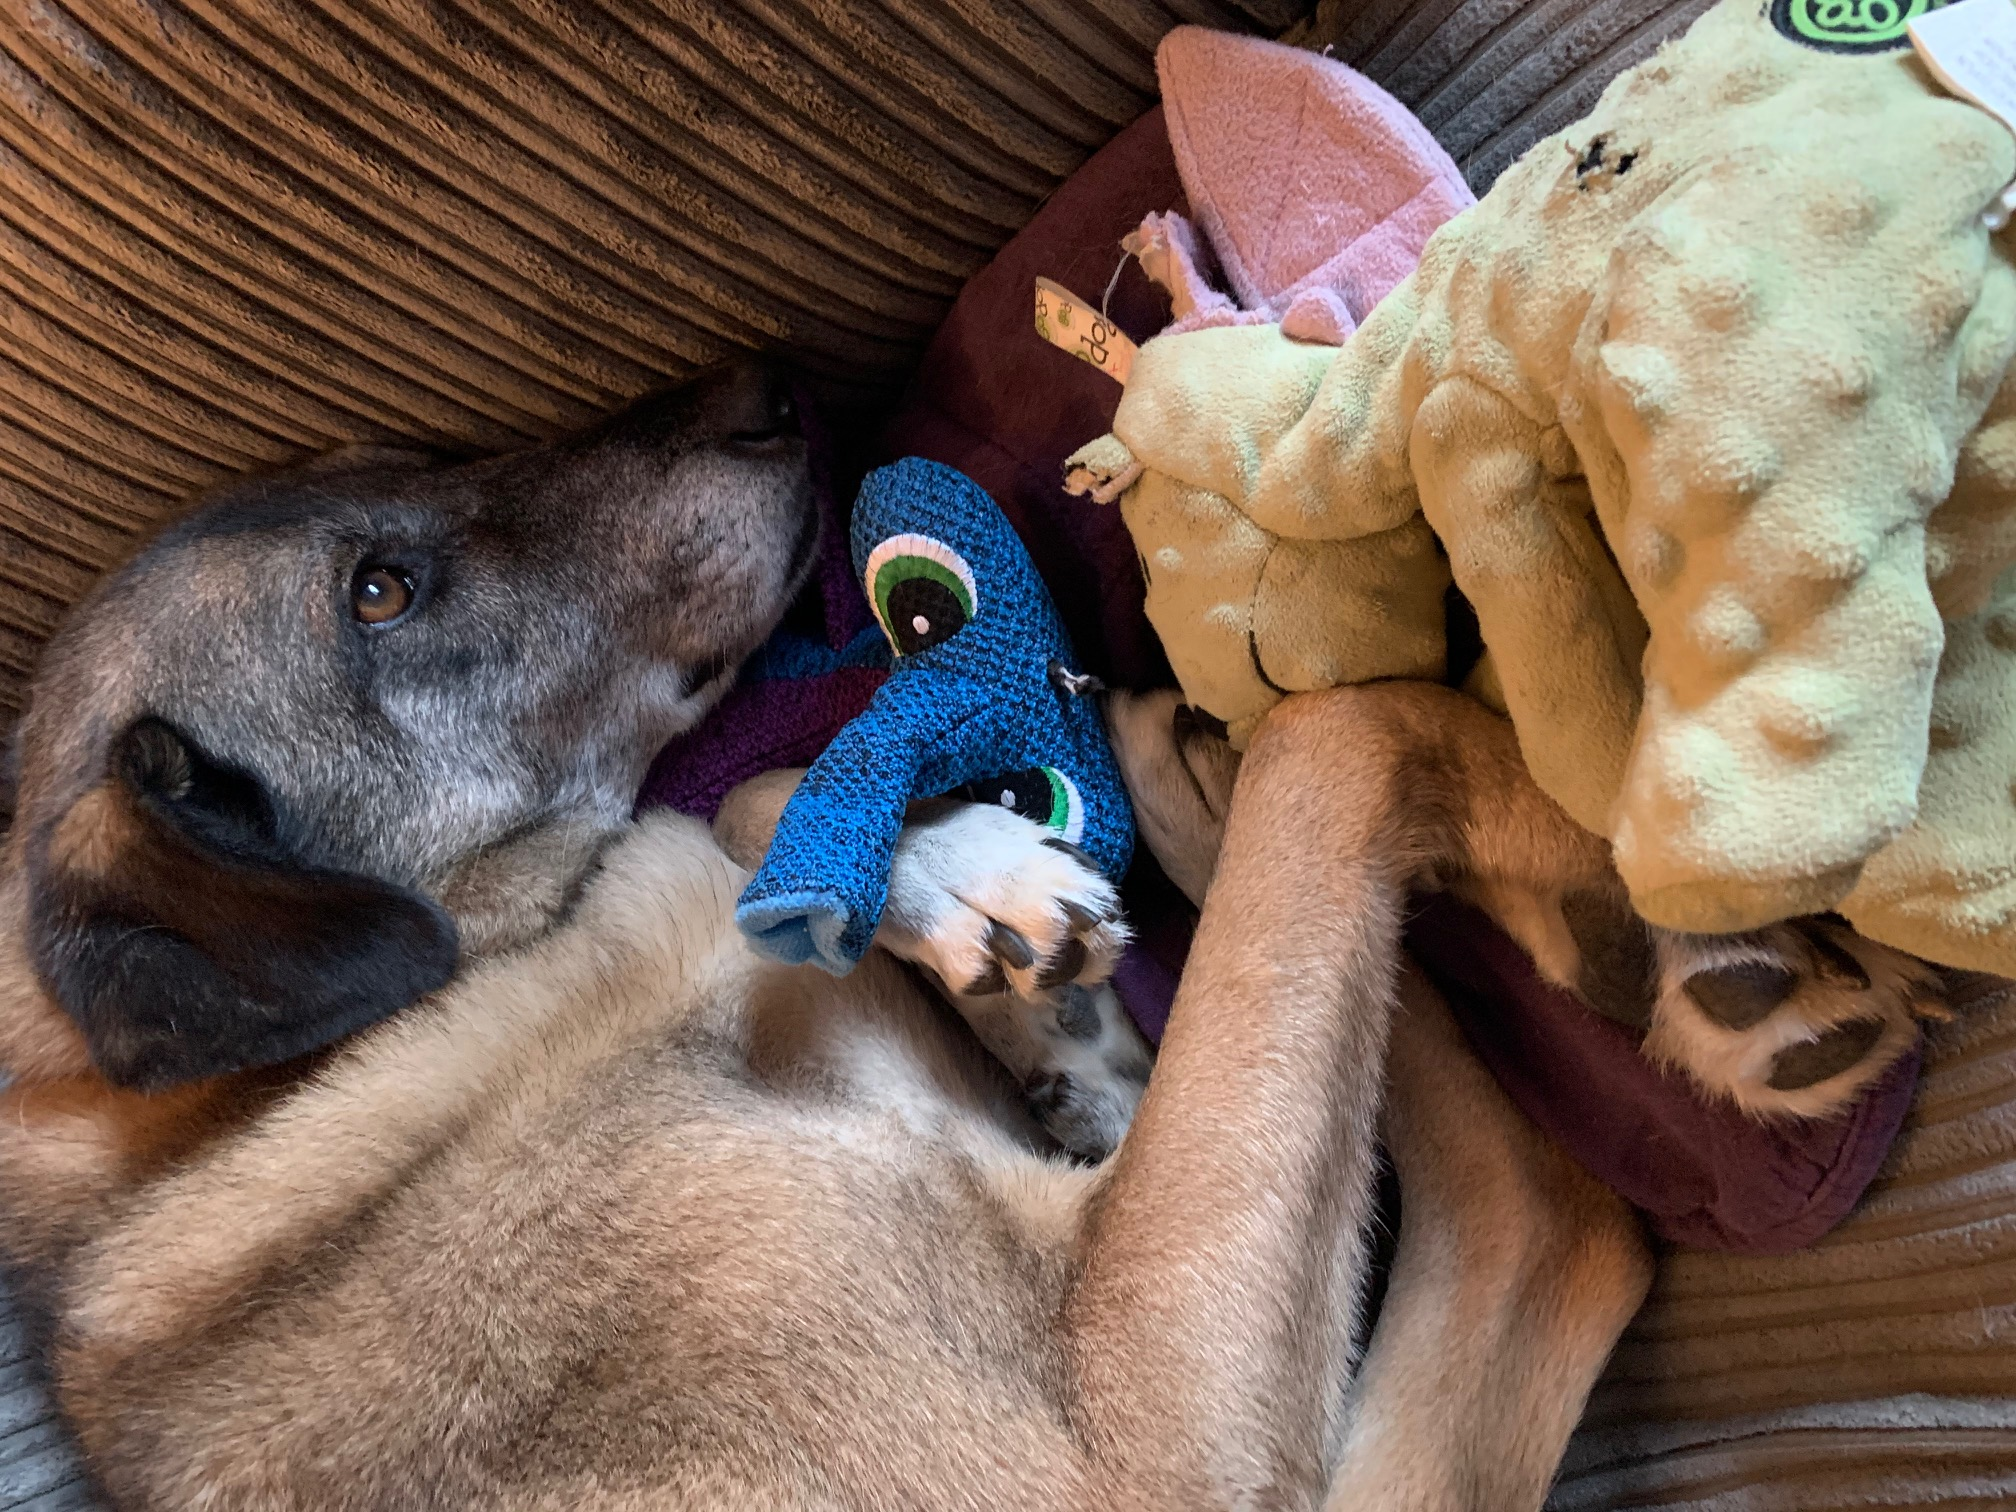 large dog with toys and a vacant gaze